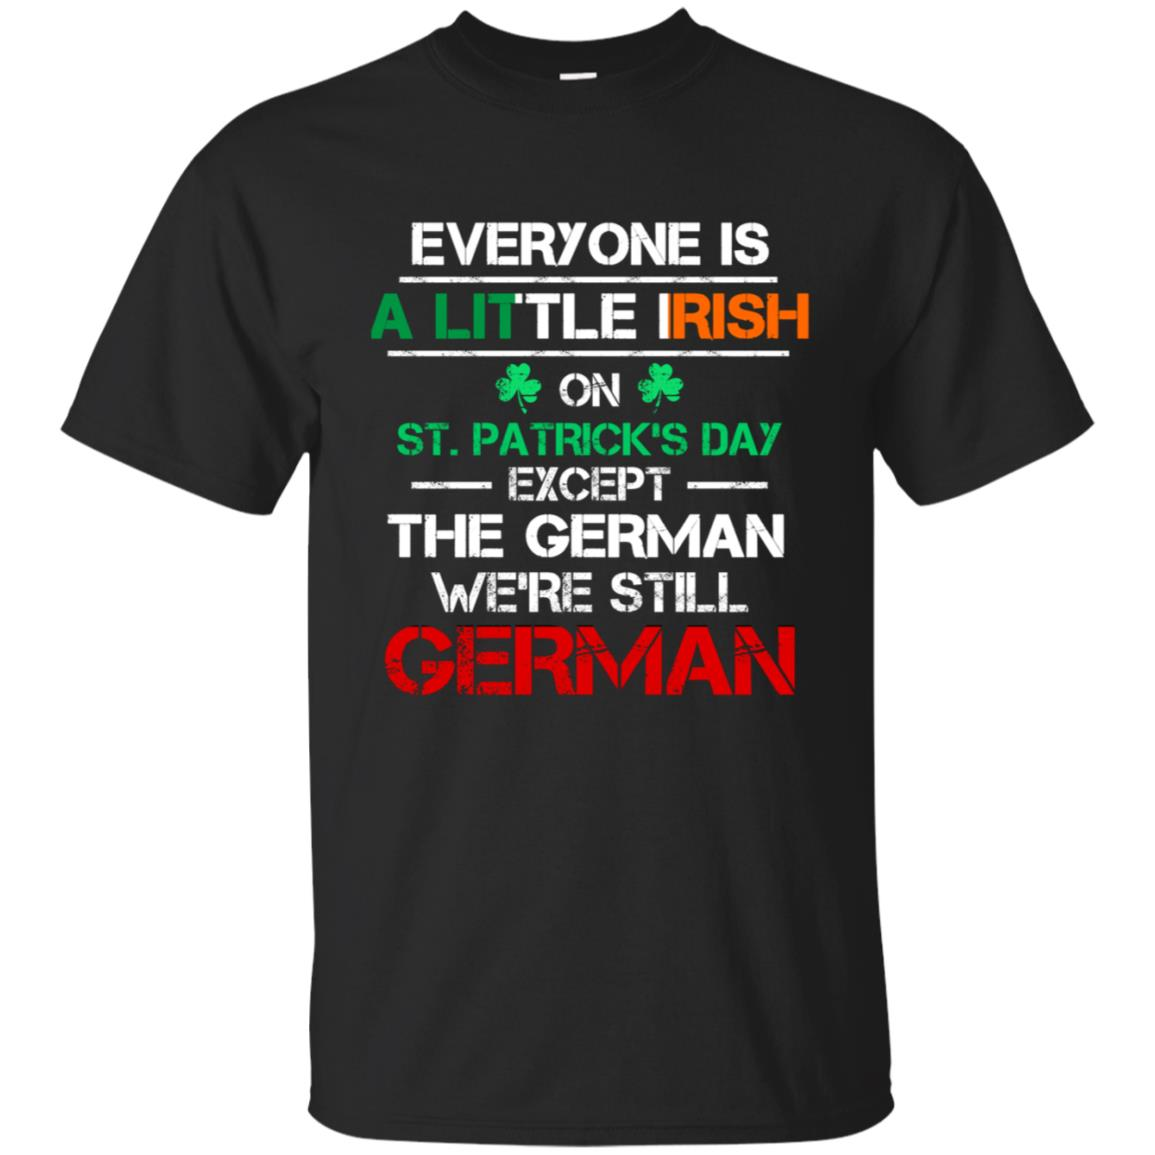 Everyone is little Irish on St Patricks day except German 99promocode